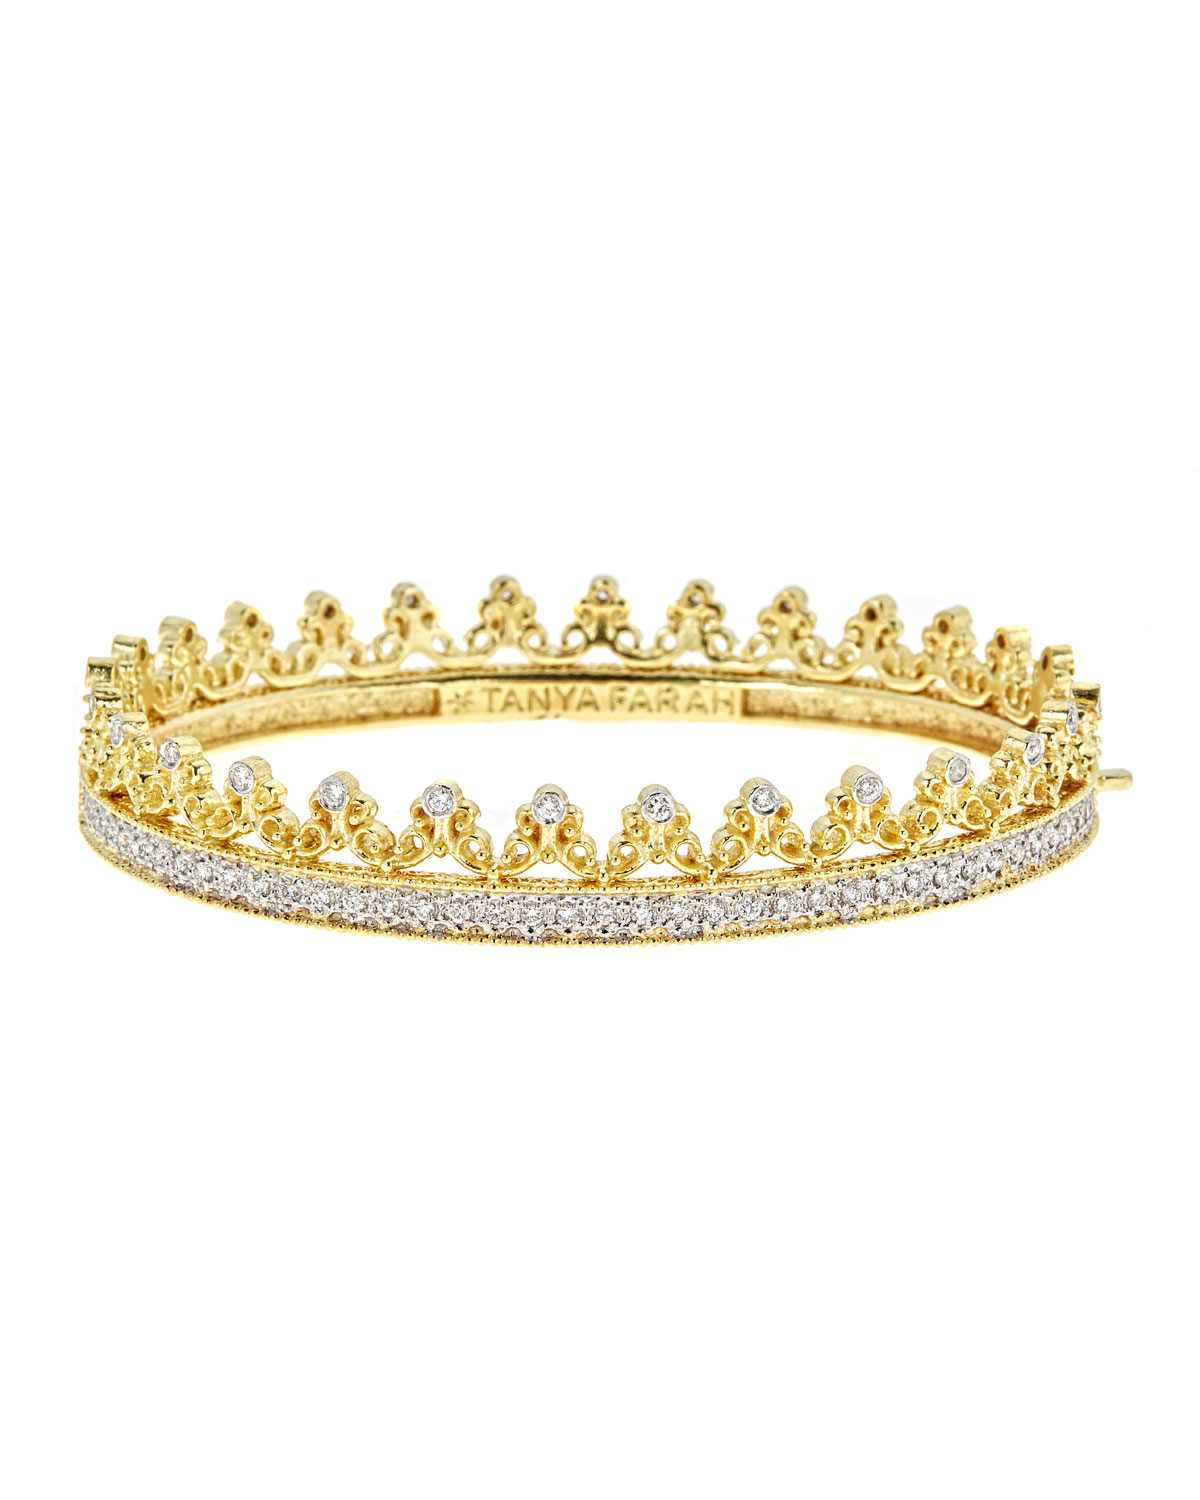 Royal Couture 18K Gold Scroll Crown Bangle with Diamonds, 2.7tdcw